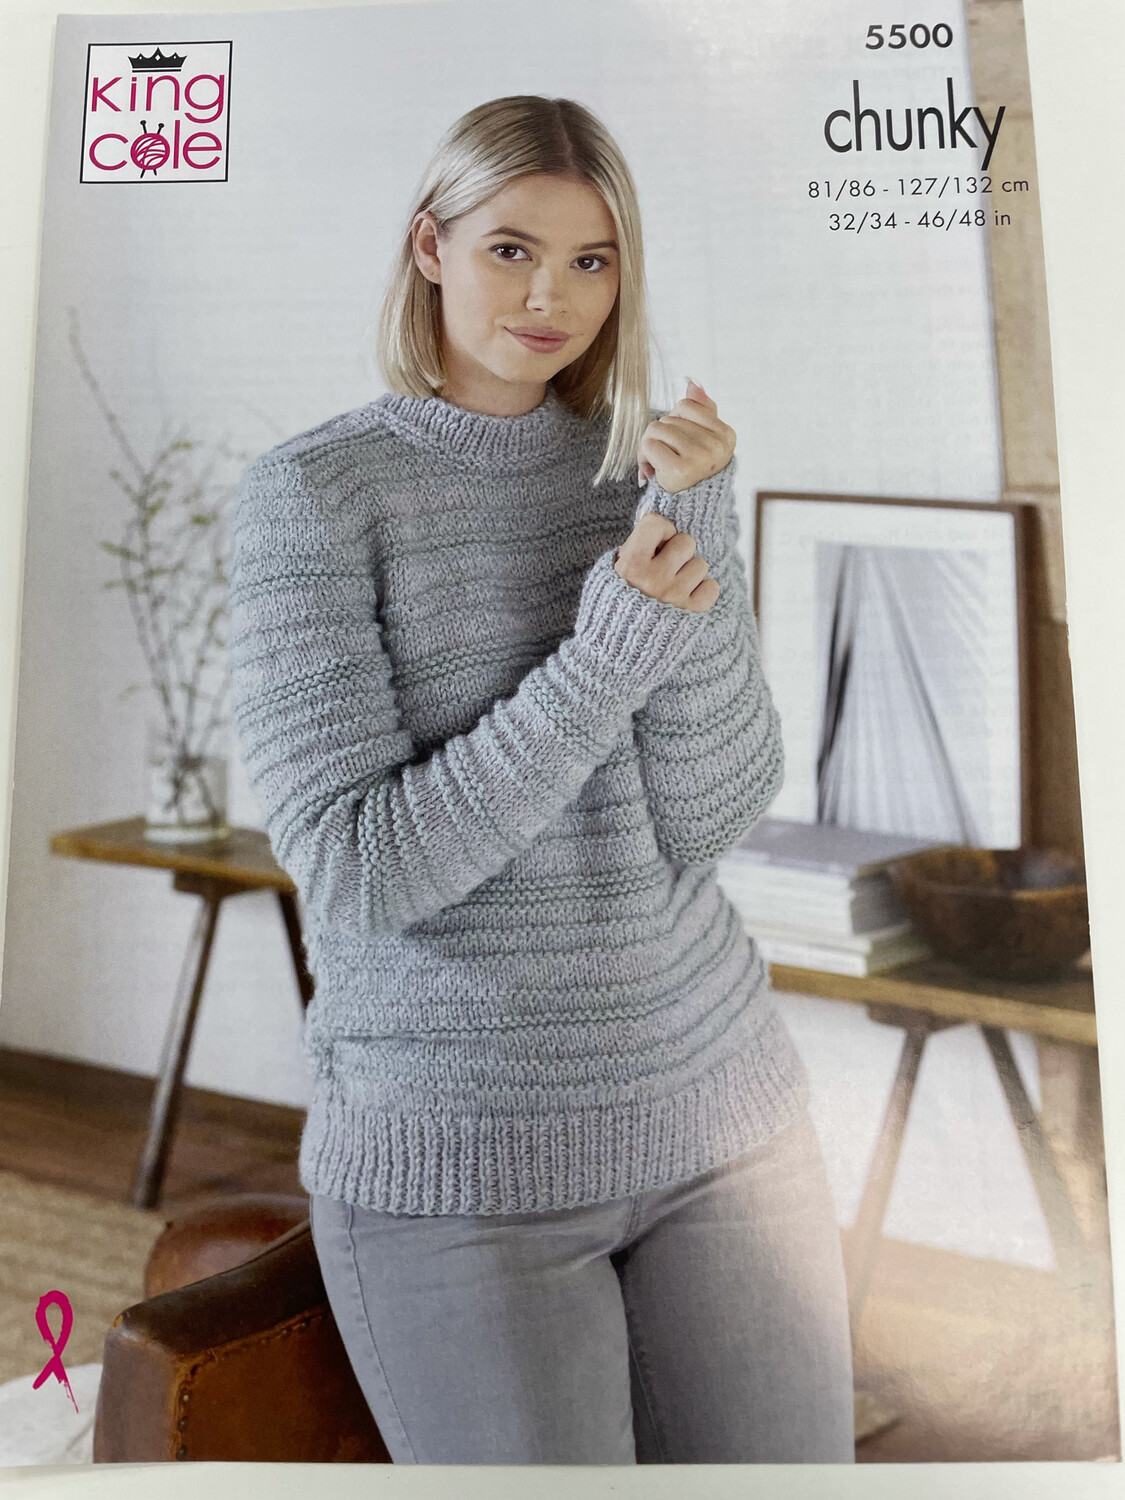 King Cole Unisex Sweaters Chunky Pattern 5500